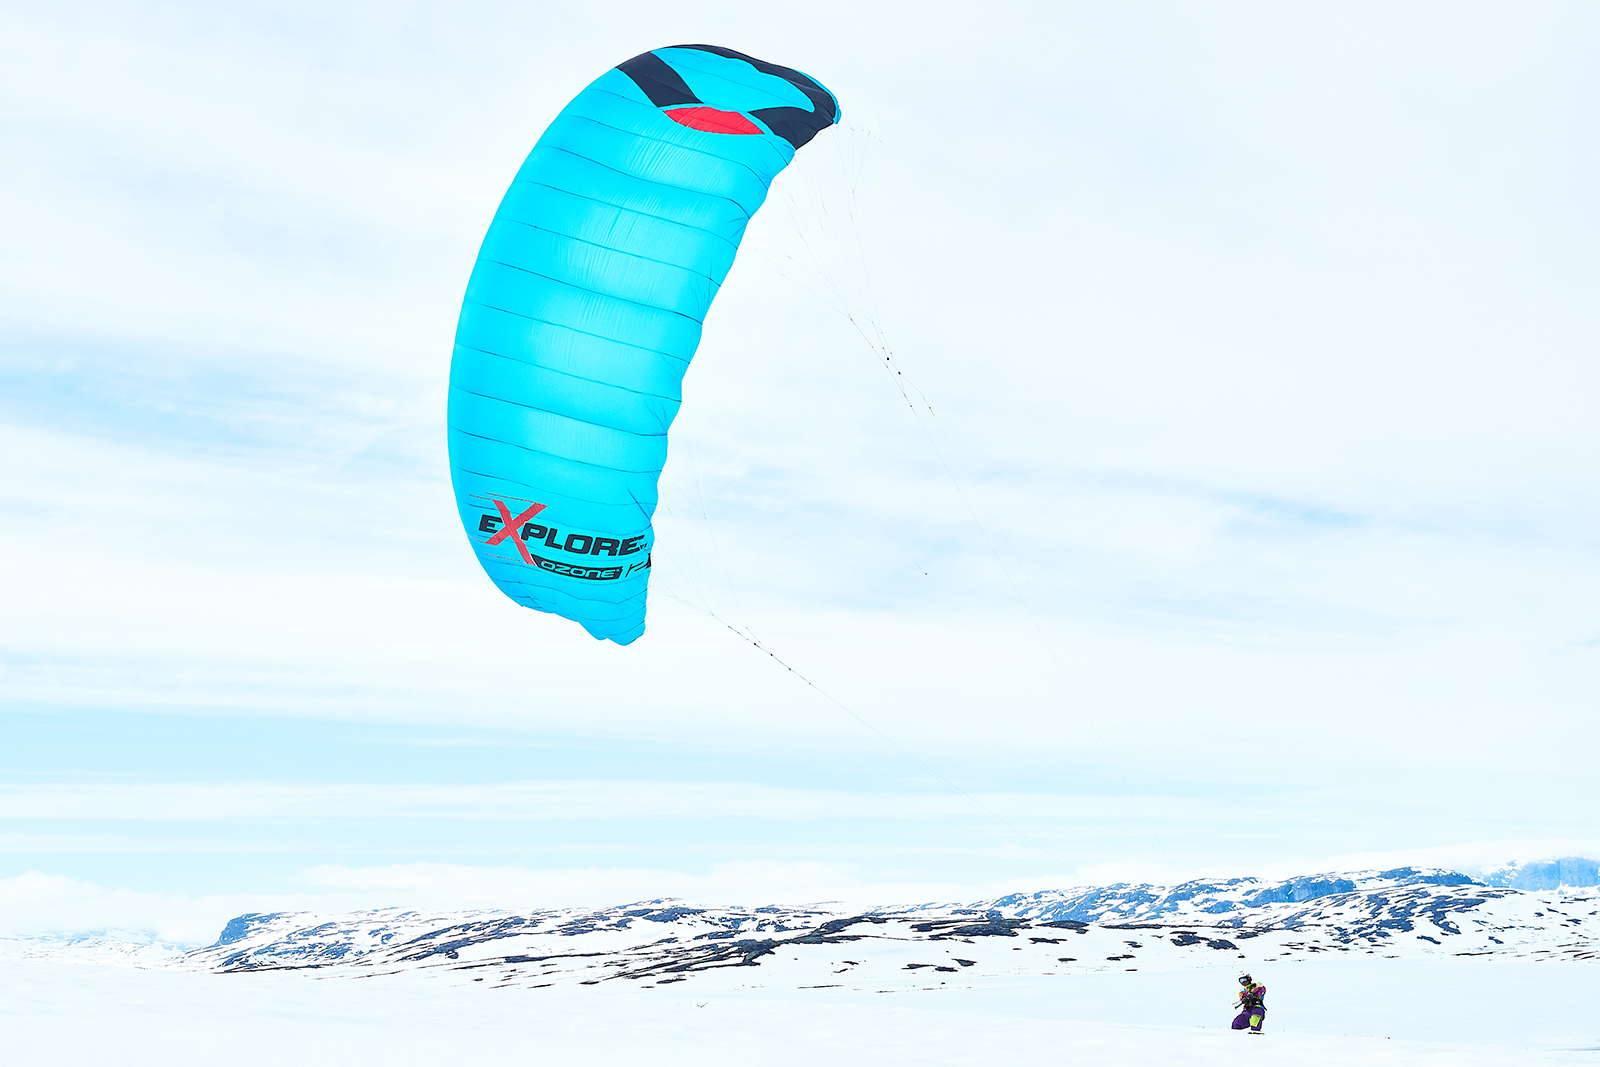 Explore V1 – New Single Skin Snow Kite